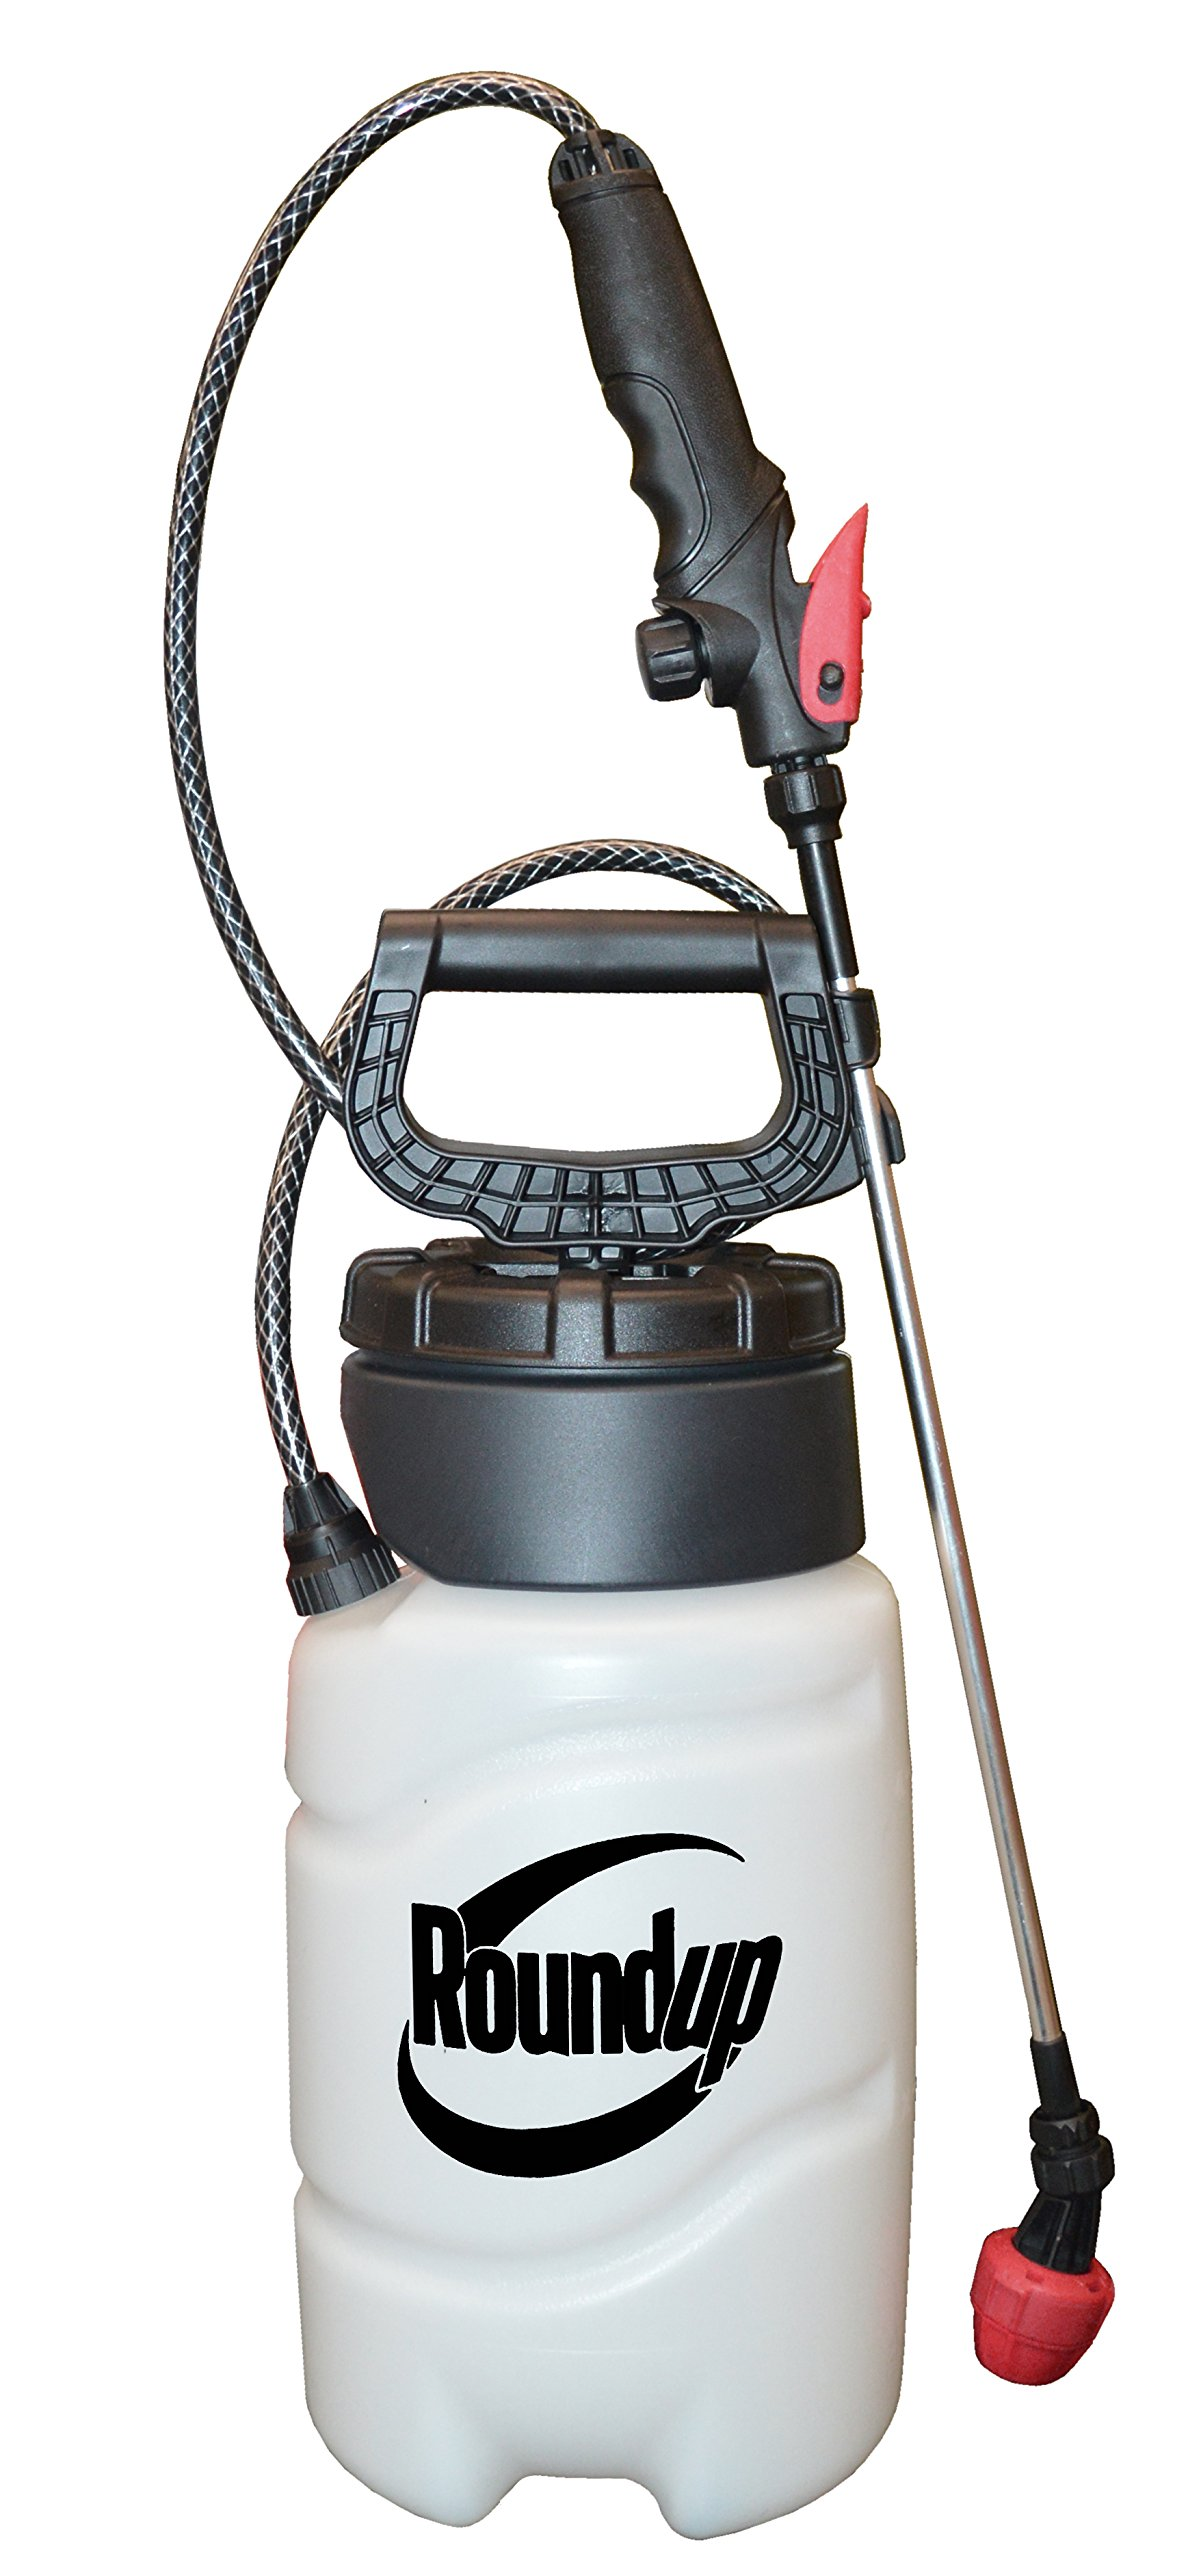 Roundup 190458 Compression Sprayer, 1 Gallon by Roundup